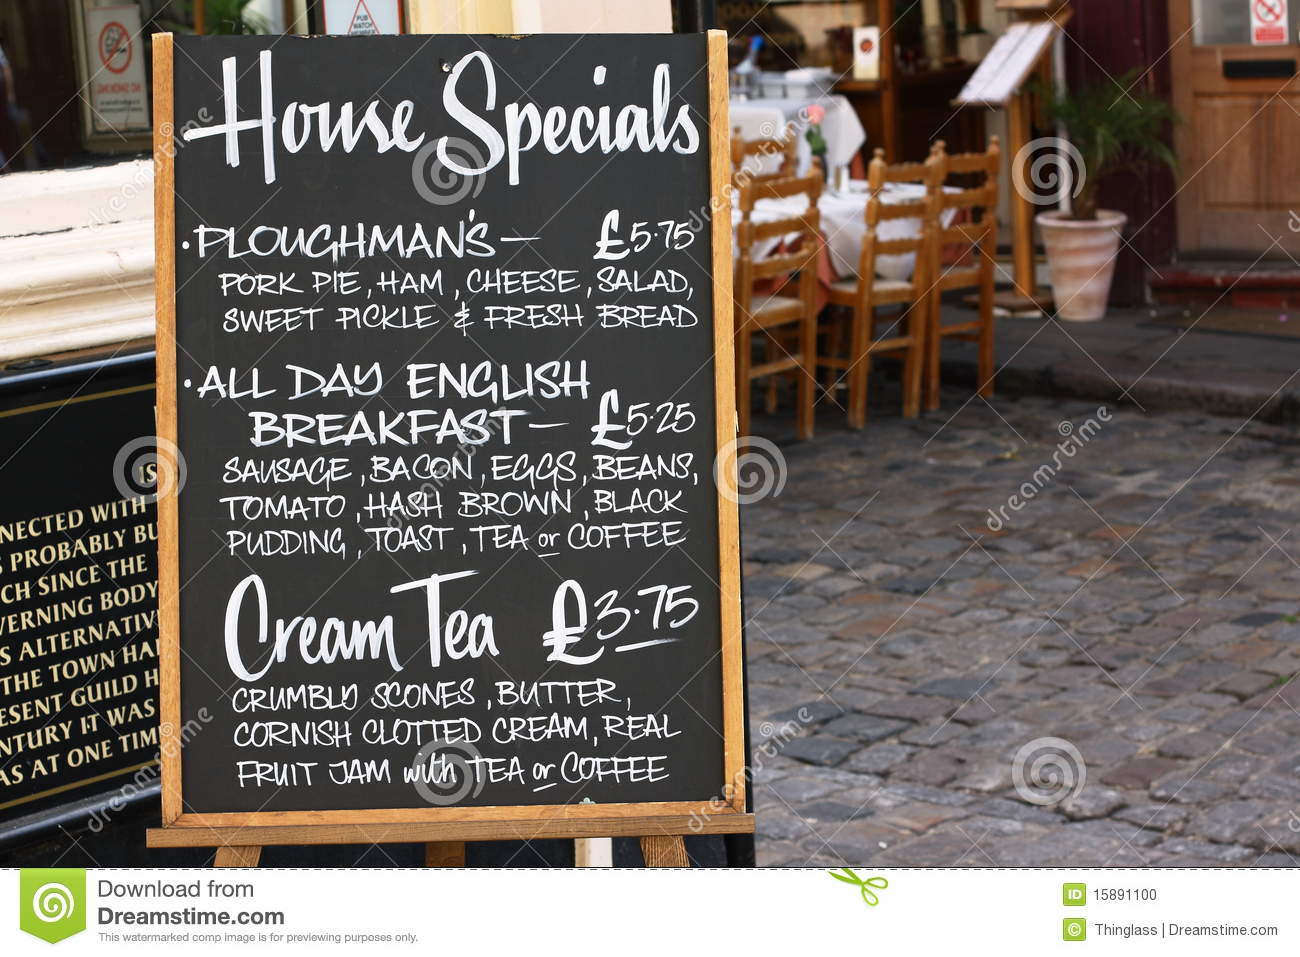 House specials menu board in england with a street cafe in the